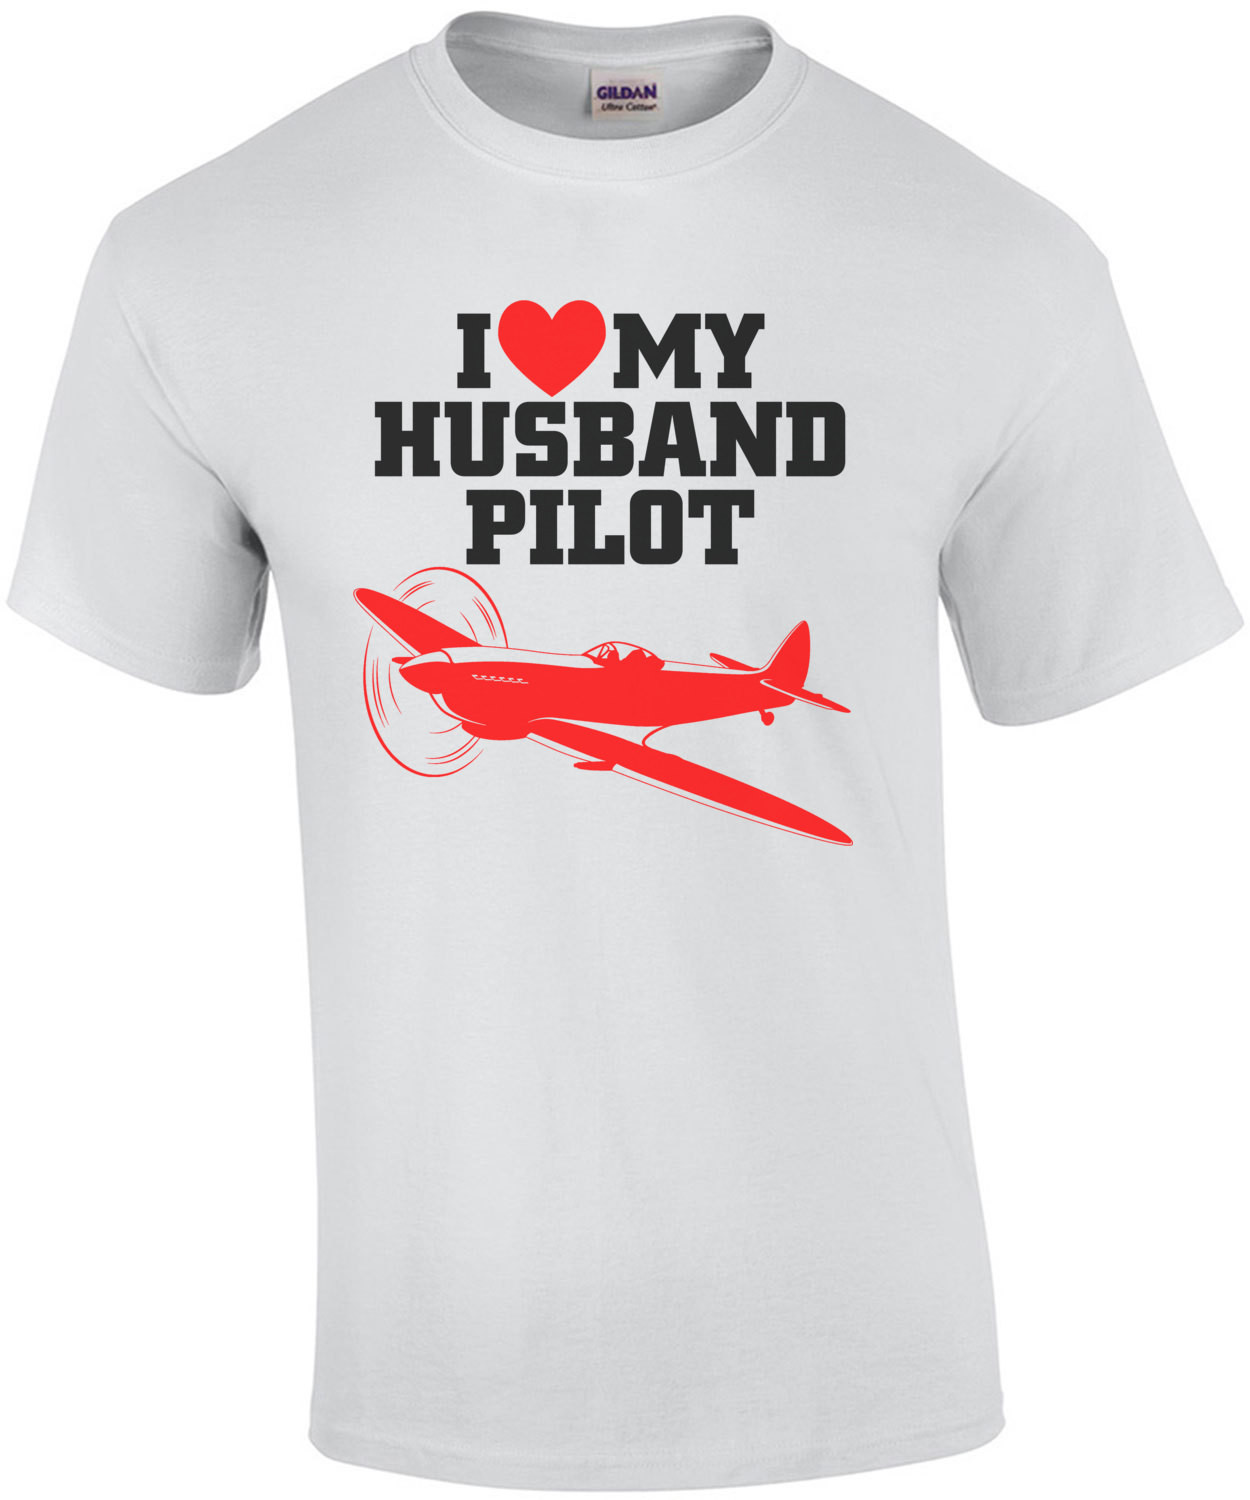 I Love My Husband Pilot T-Shirt